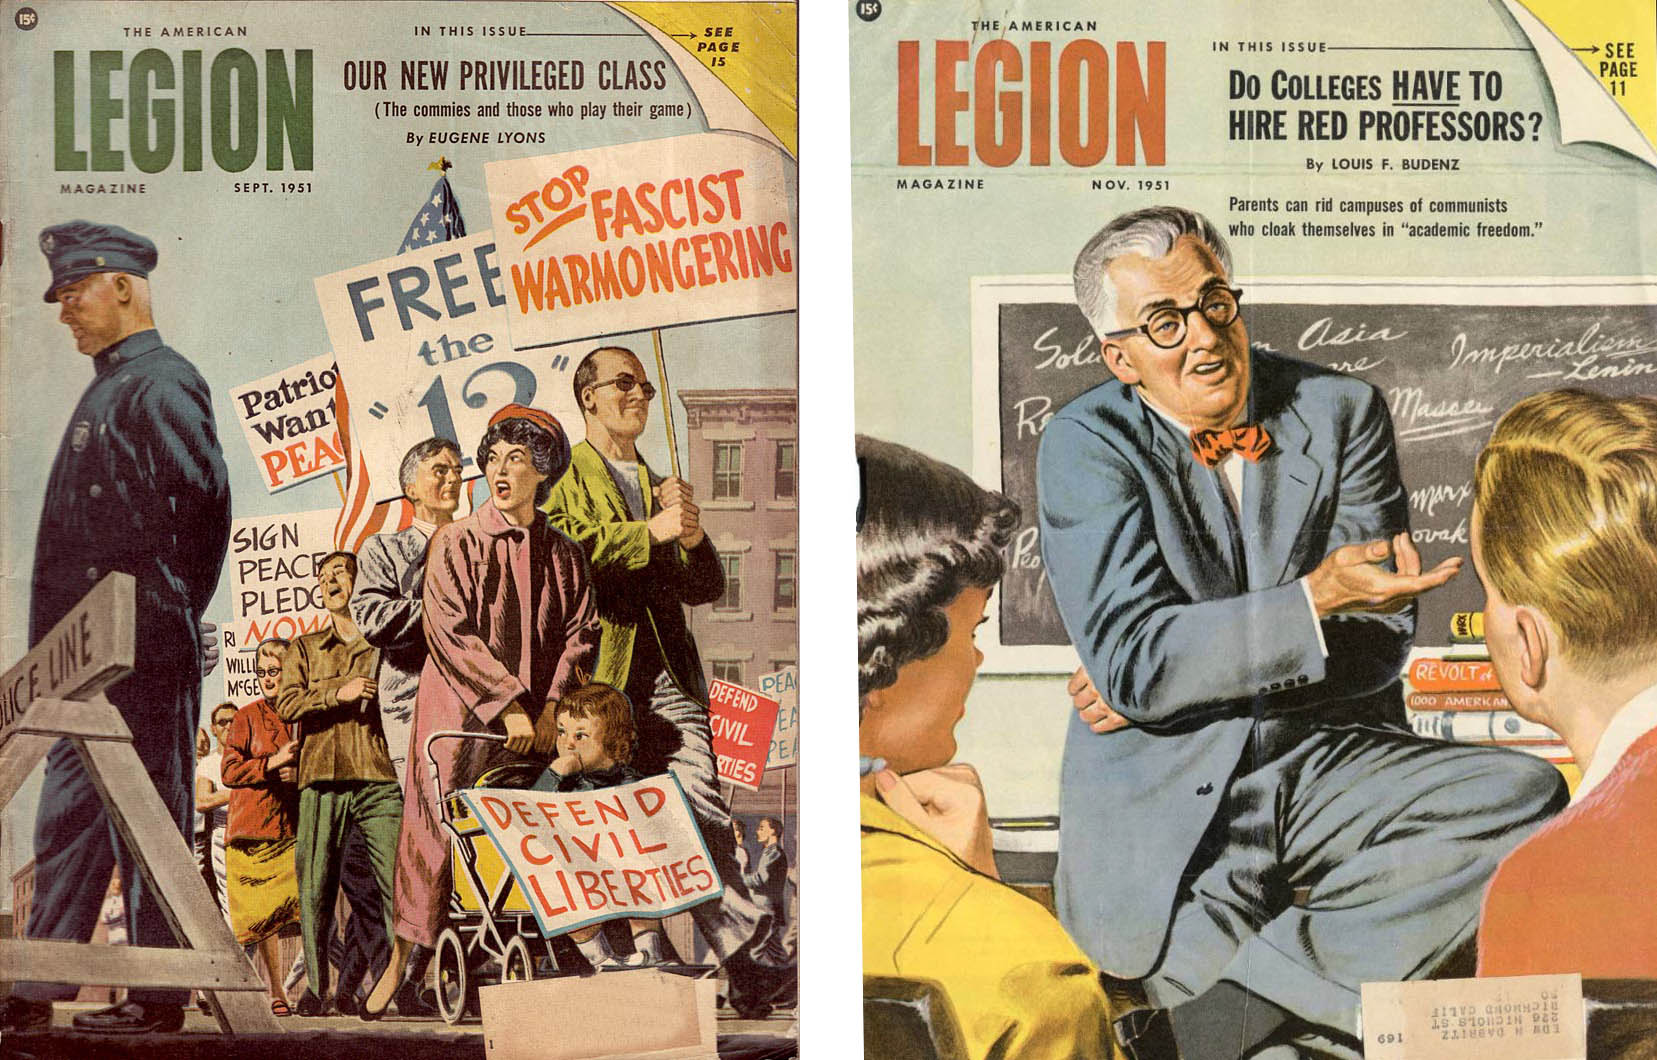 Two 1951 covers from the American Legion magazine depicting activism and Communism on campus. (American Legion Digital Archive)